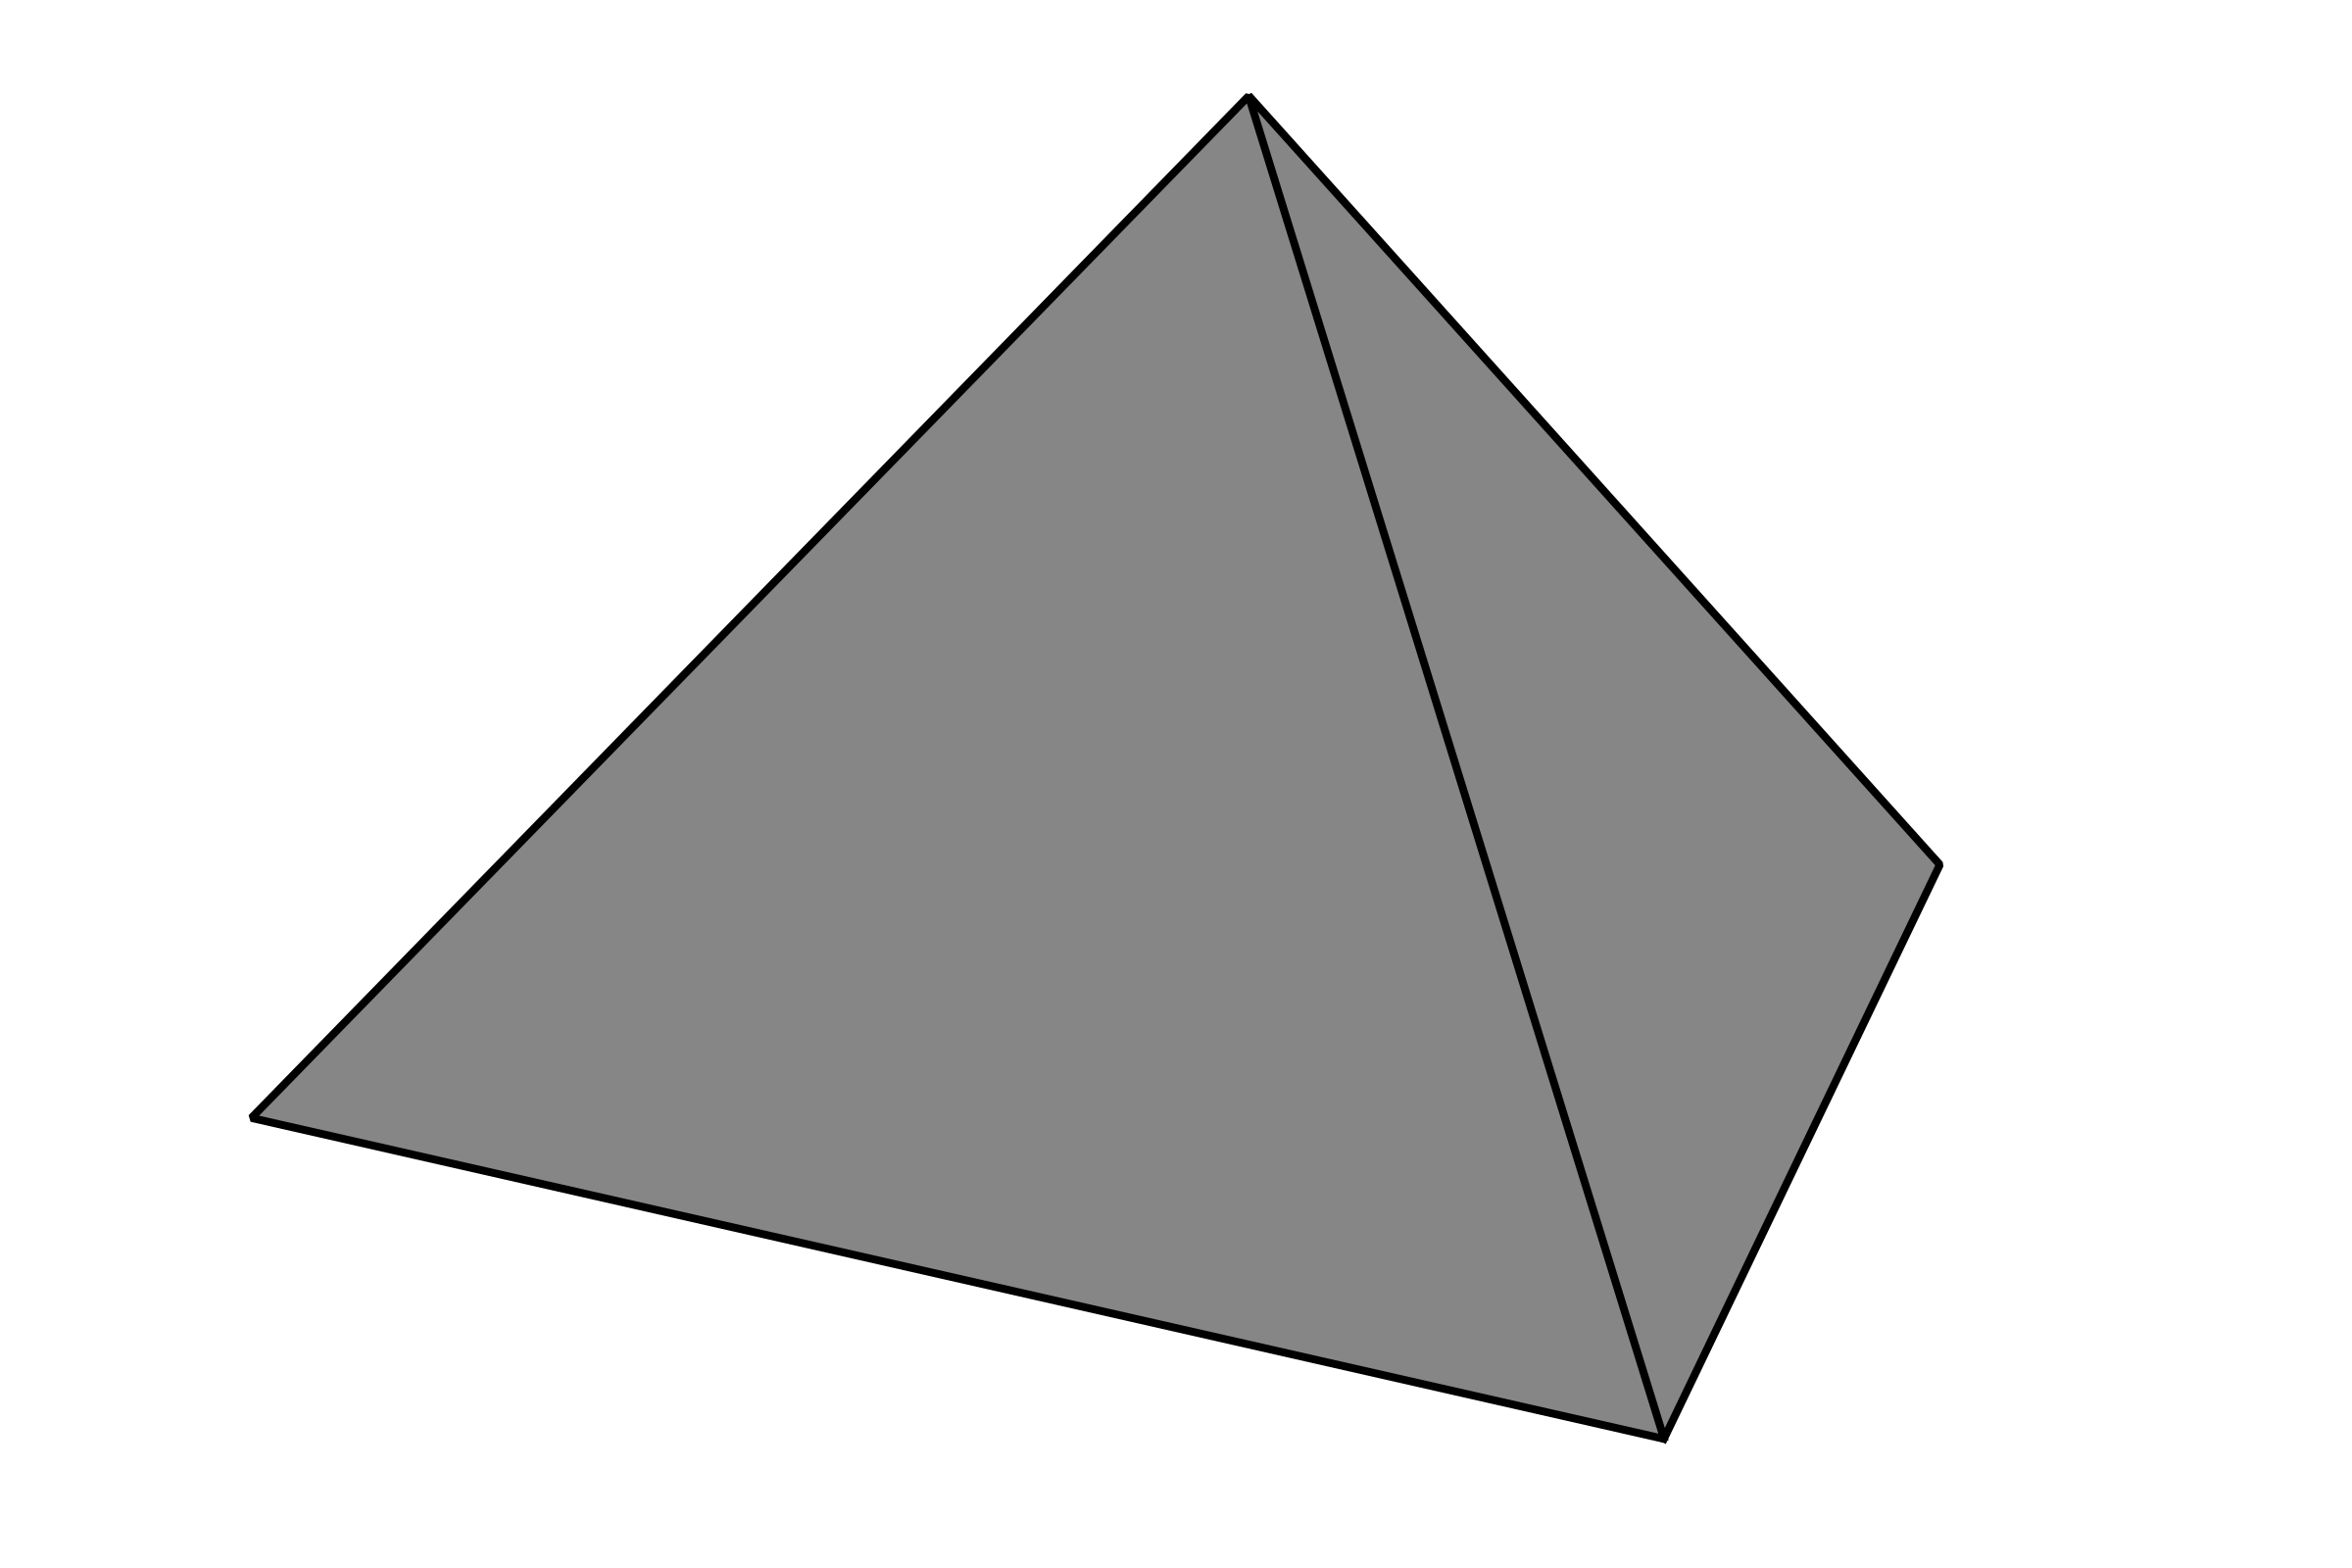 Simple Pyramid - grey by Sonshine_Penguin